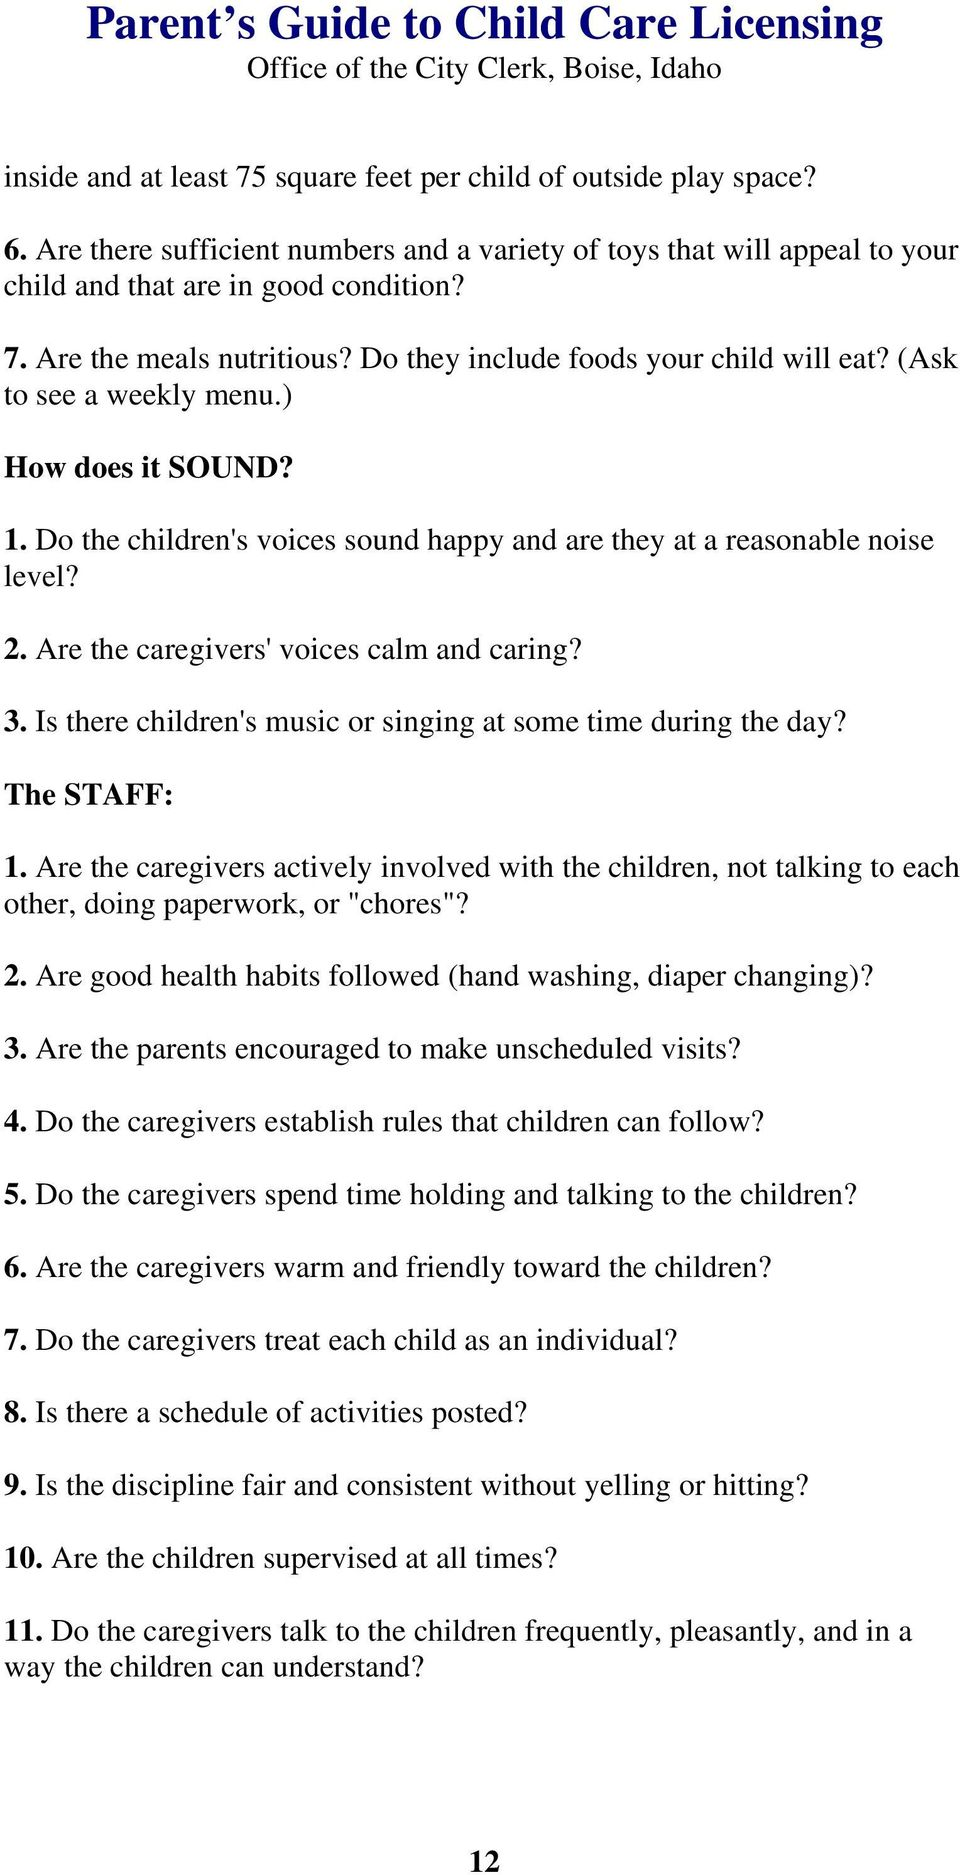 Are the caregivers' voices calm and caring? 3. Is there children's music or singing at some time during the day? The STAFF: 1.